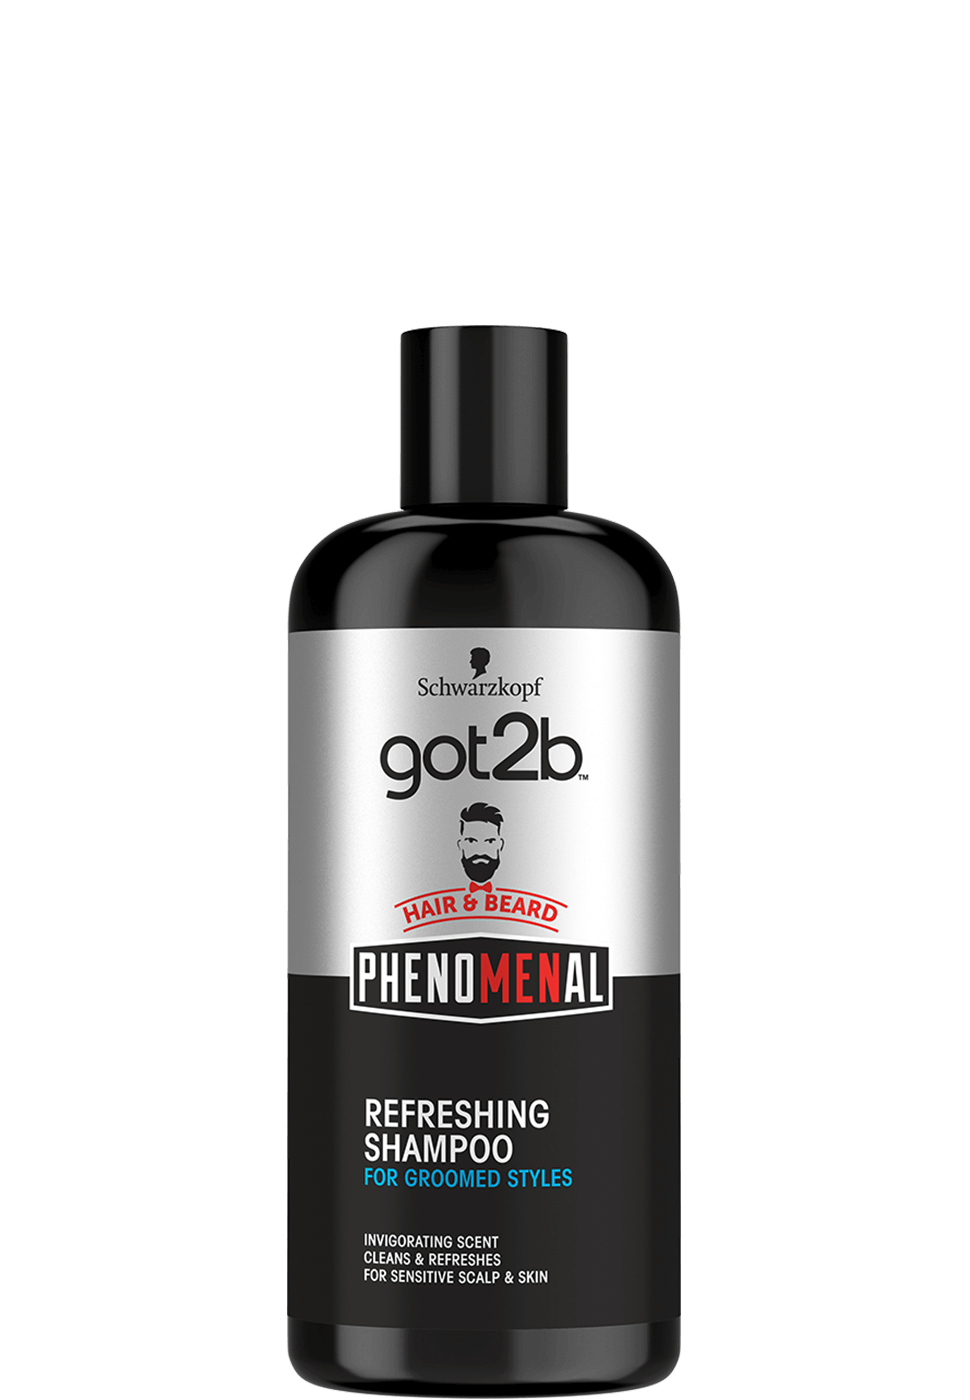 got2b_com_phenomenal_refreshing_shampoo_970x1400